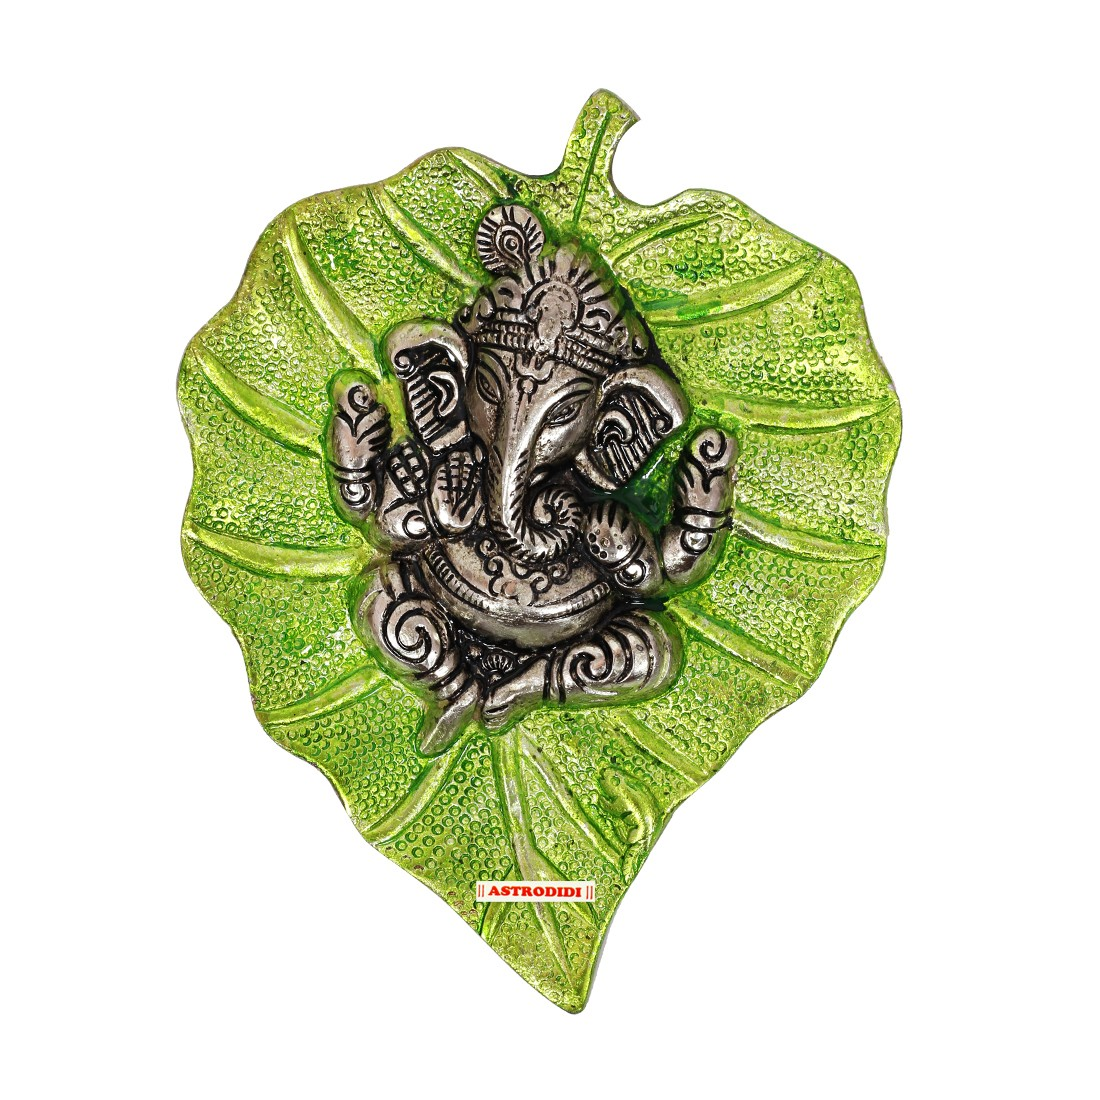 Astrodidi Leaf Ganesha Green Color Wall Hanging for Vastu